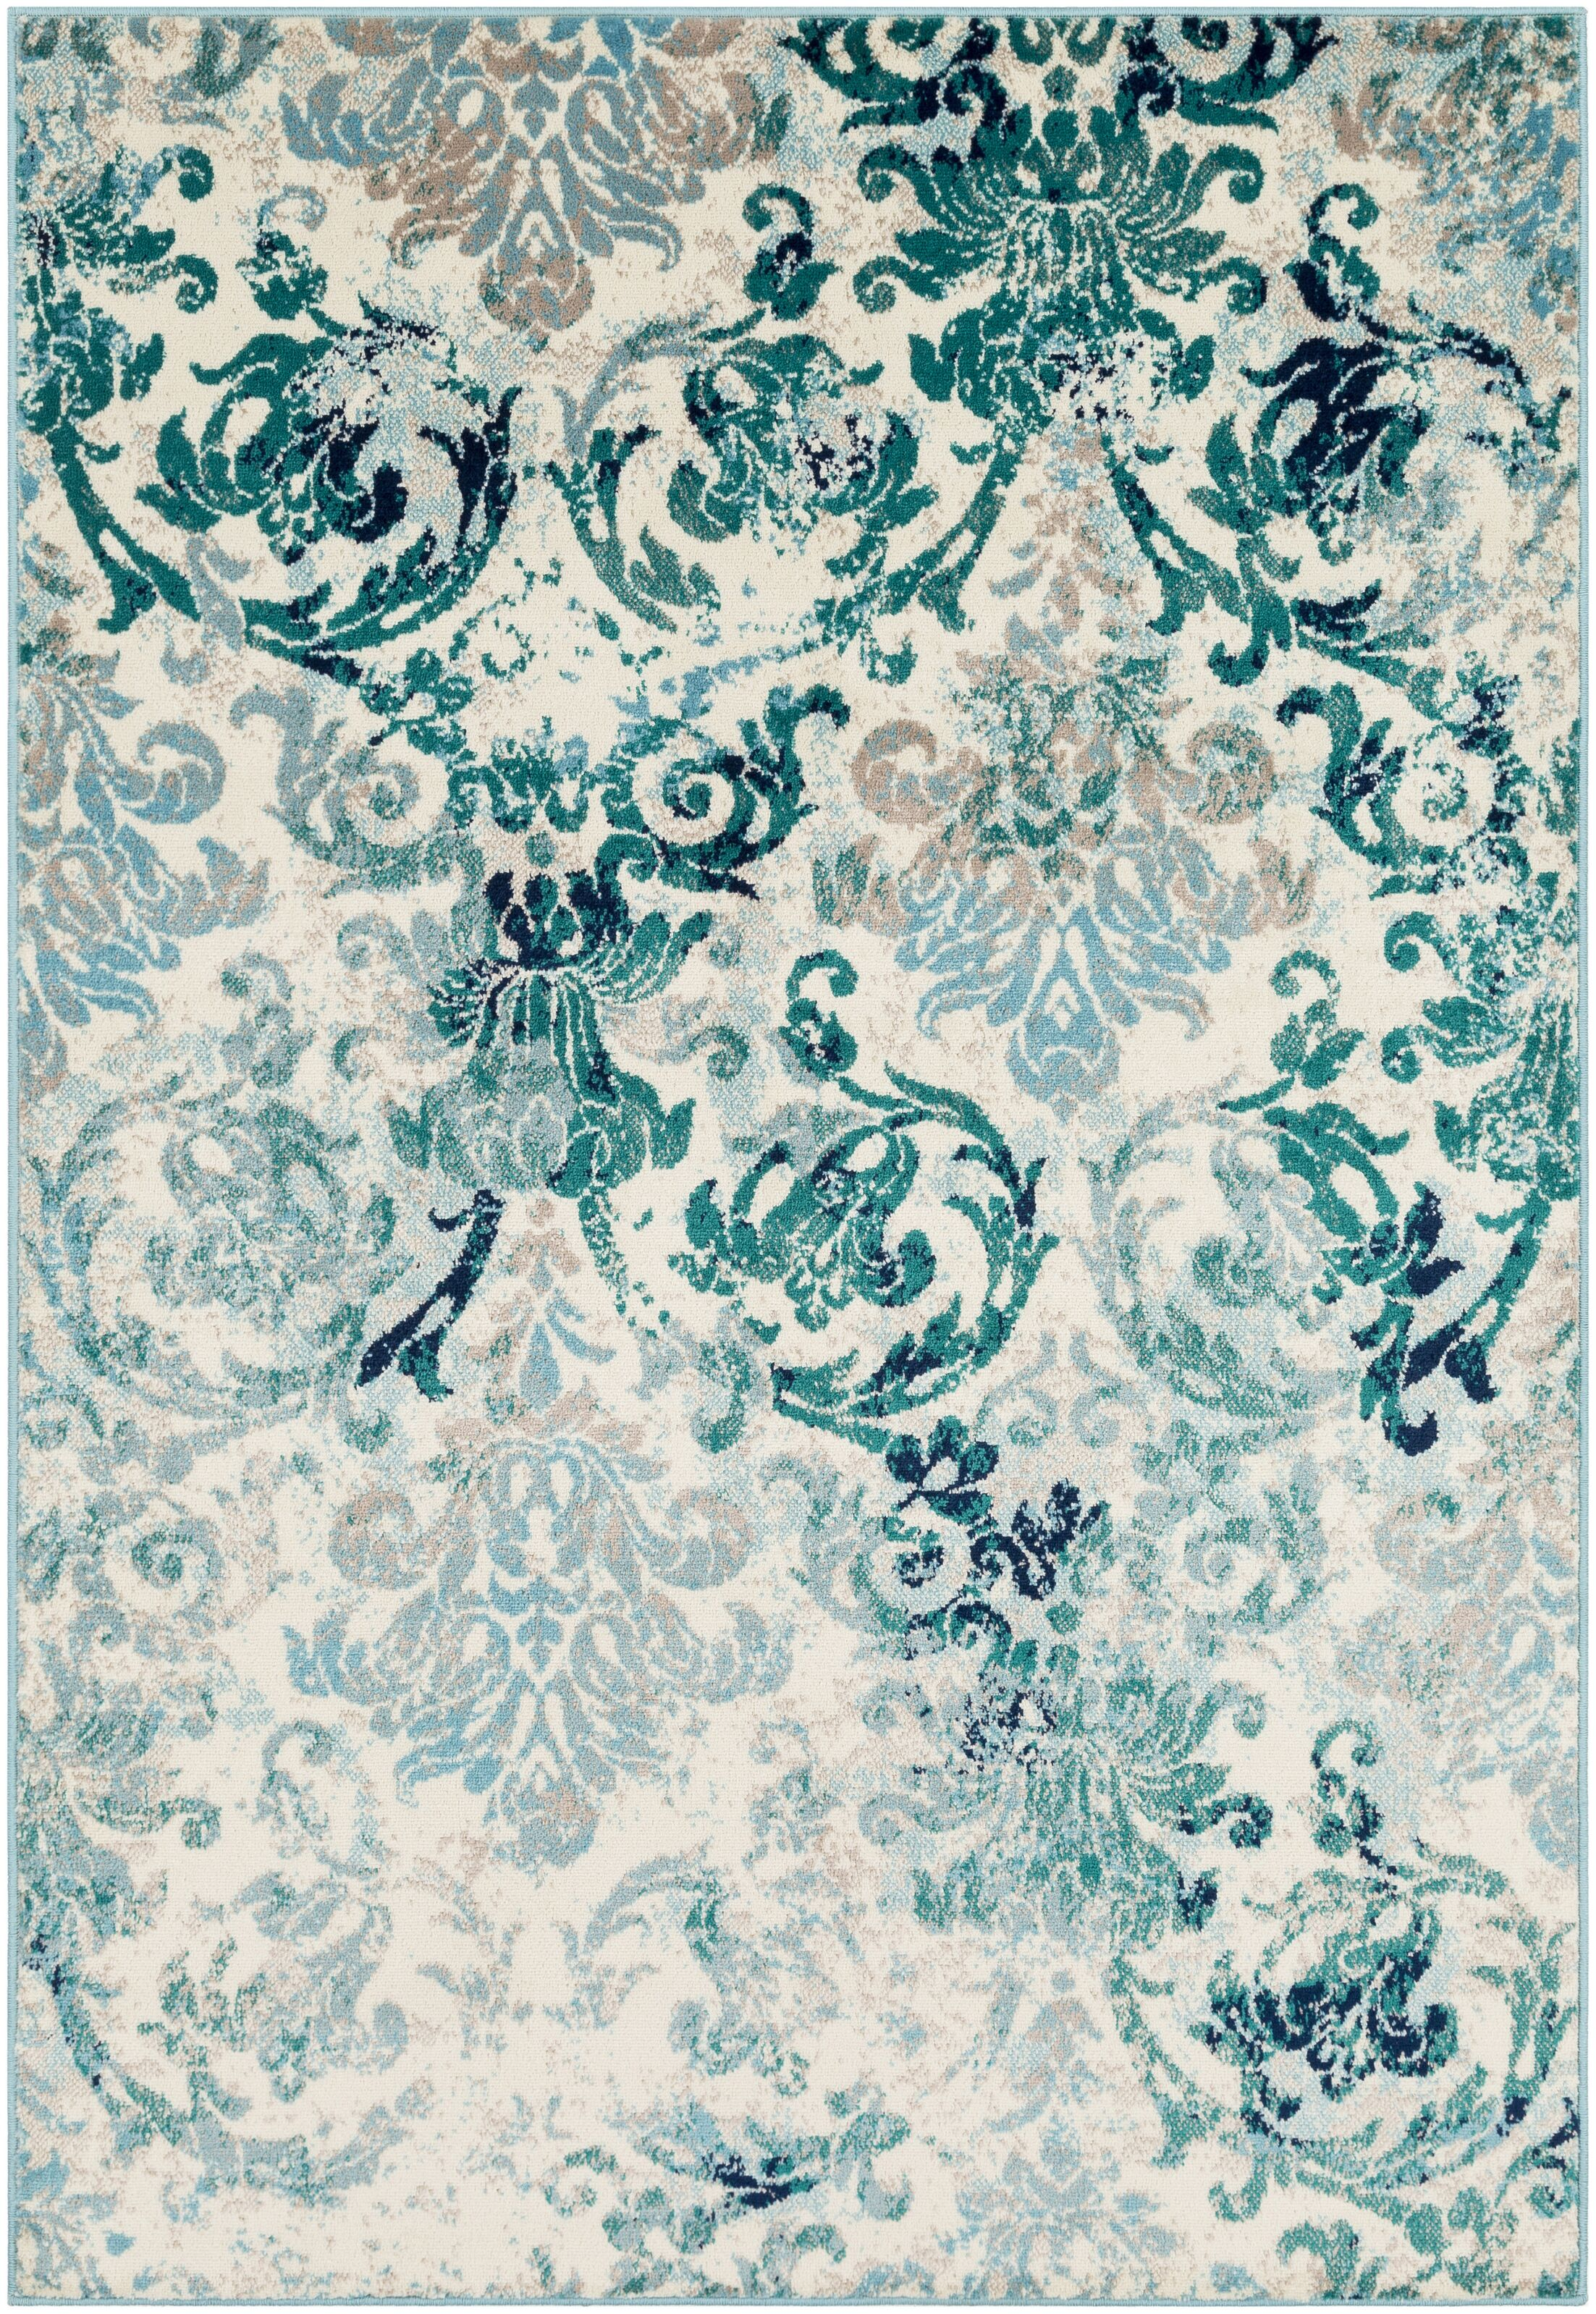 Ramsay Distressed Floral Teal/Light Blue Area Rug Rug Size: Rectangle 7'9